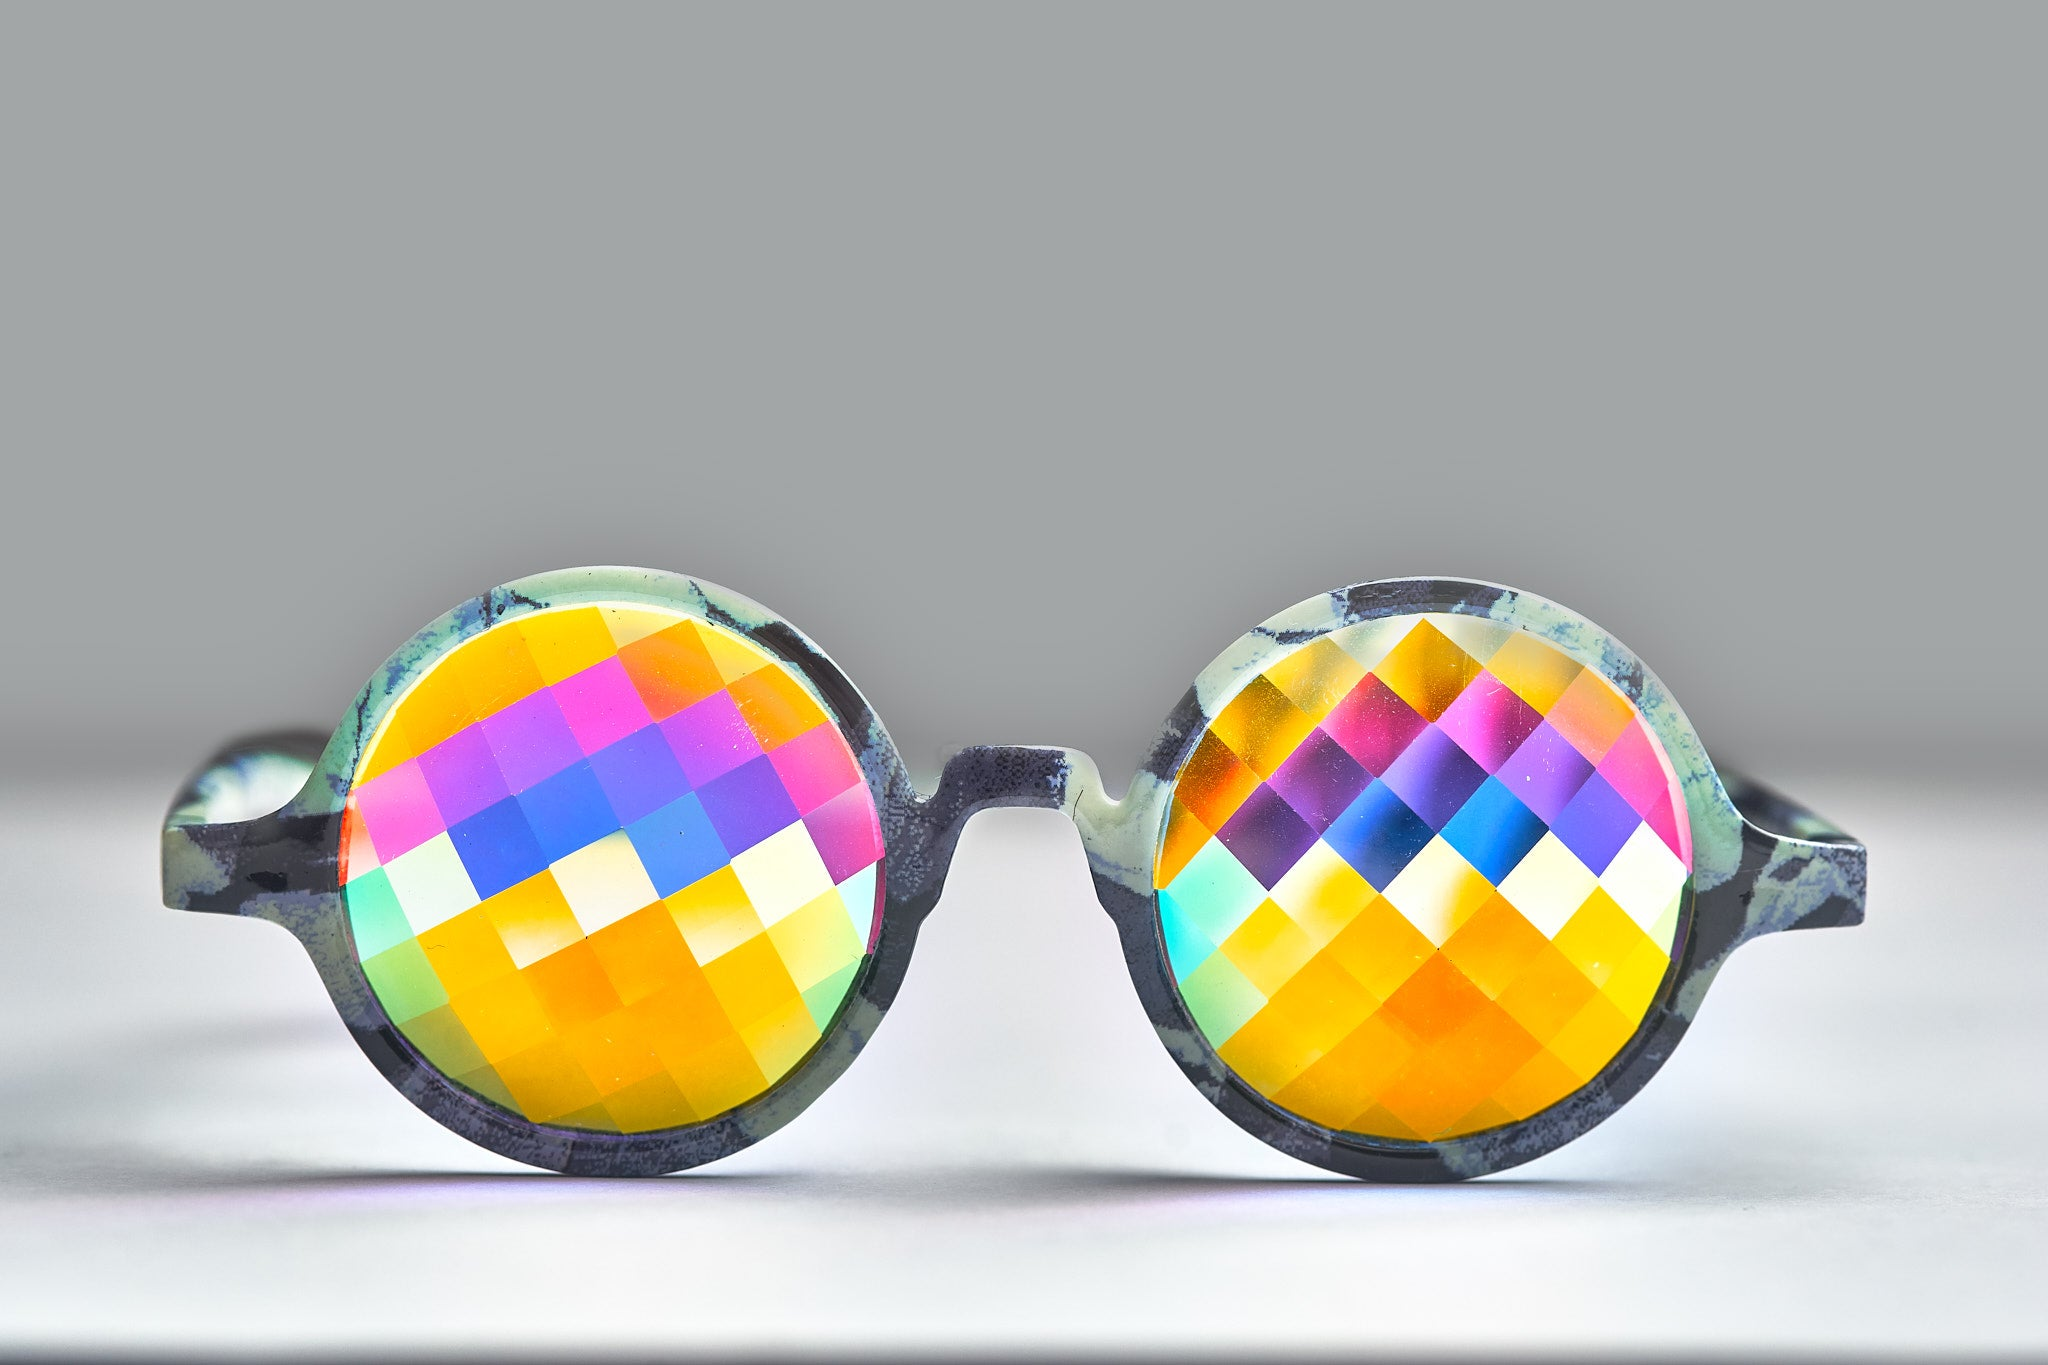 Intense Diamond Kaleidoscope Effect rainbow crystal lens Sunglasses Women Men Party Festival Glow Bug Eye Poral Marble  Helvetica Glasses at SuperFried's Festival Accessories and Sunglasses Online store